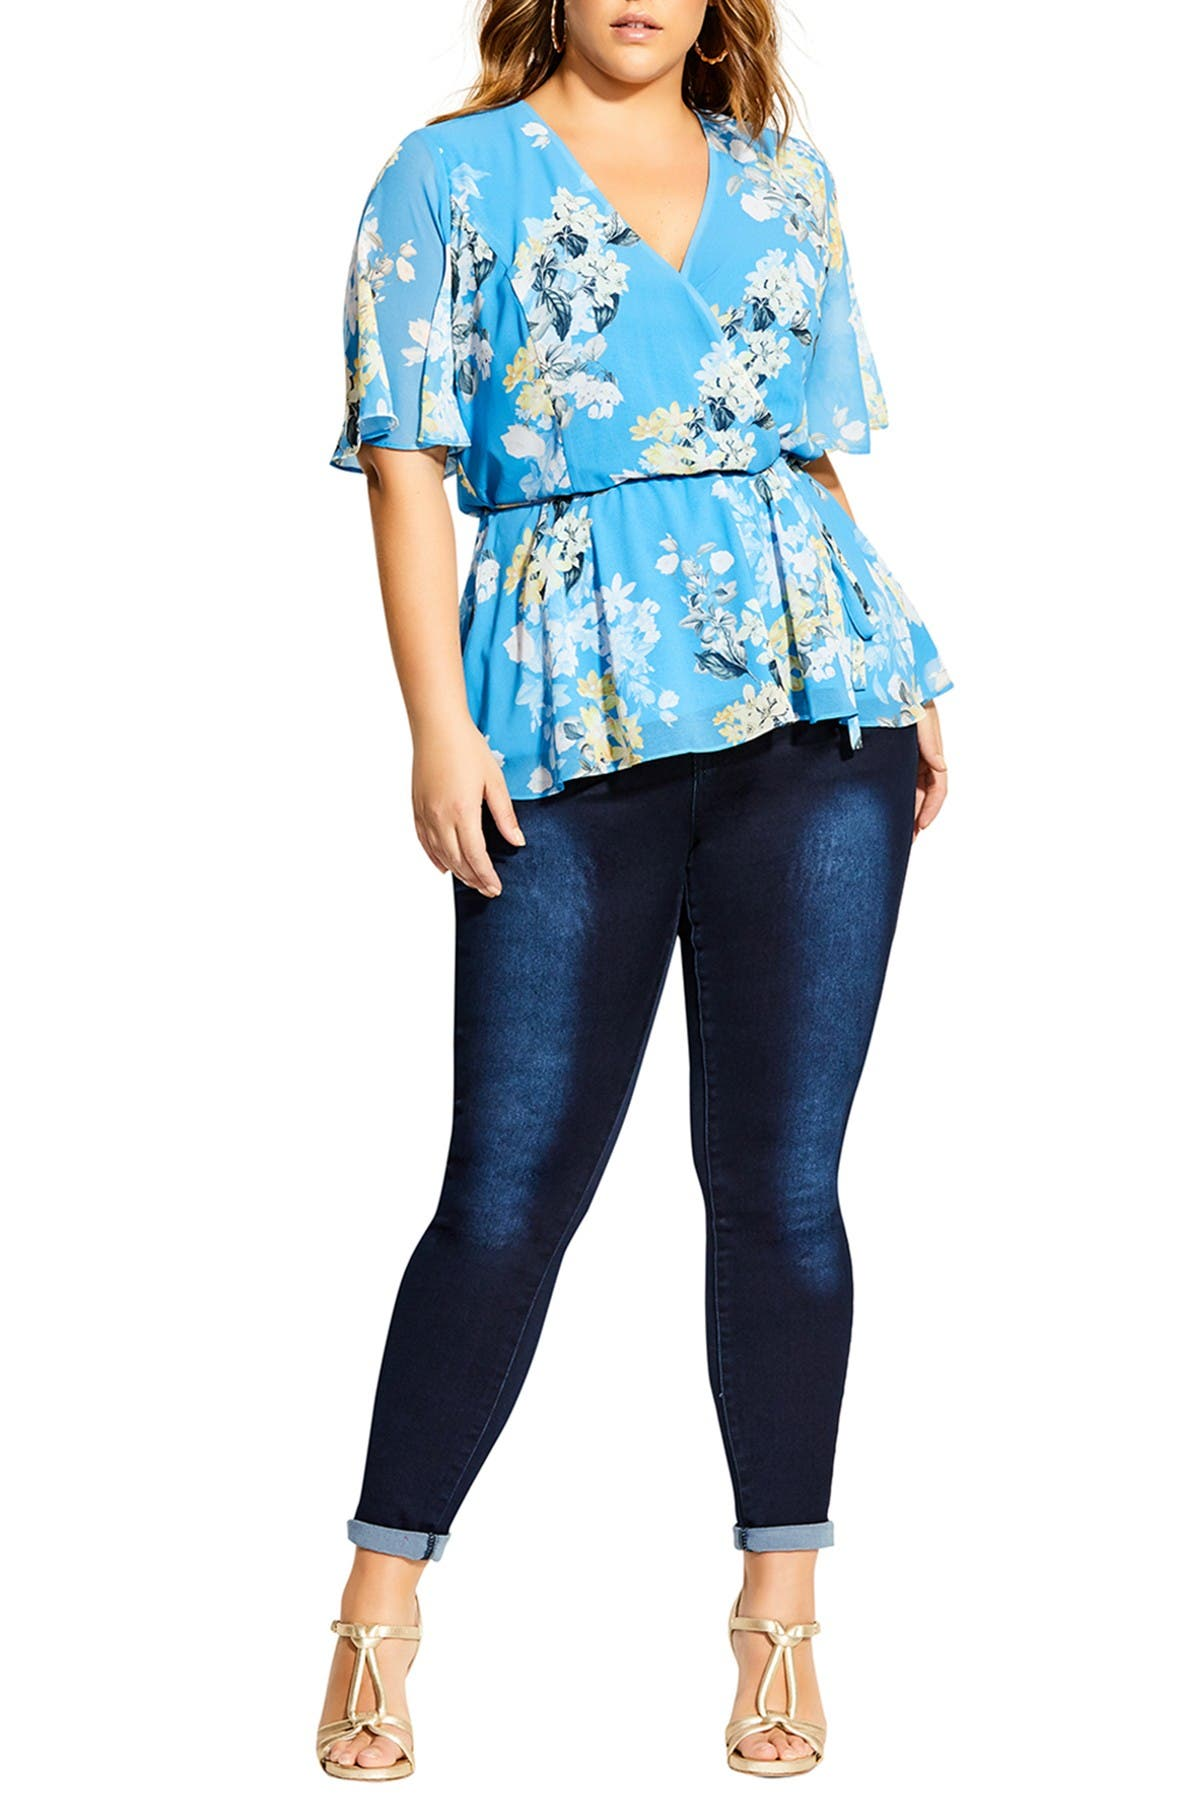 Image of City Chic Whisper Floral Top